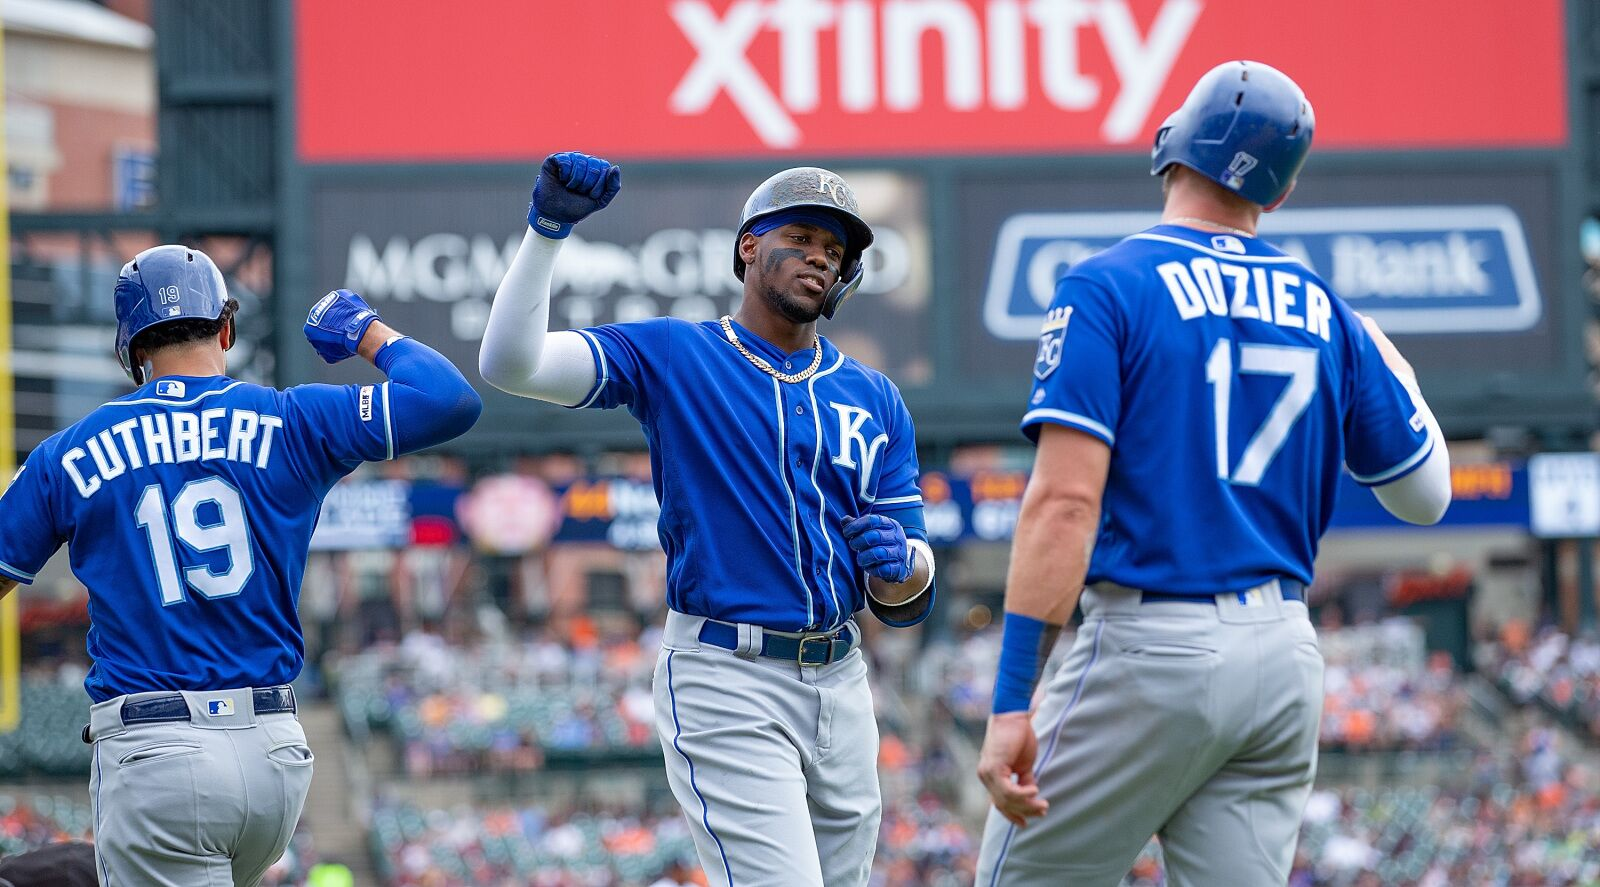 Chicago Cubs: Jorge Soler hitting his stride with the Royals